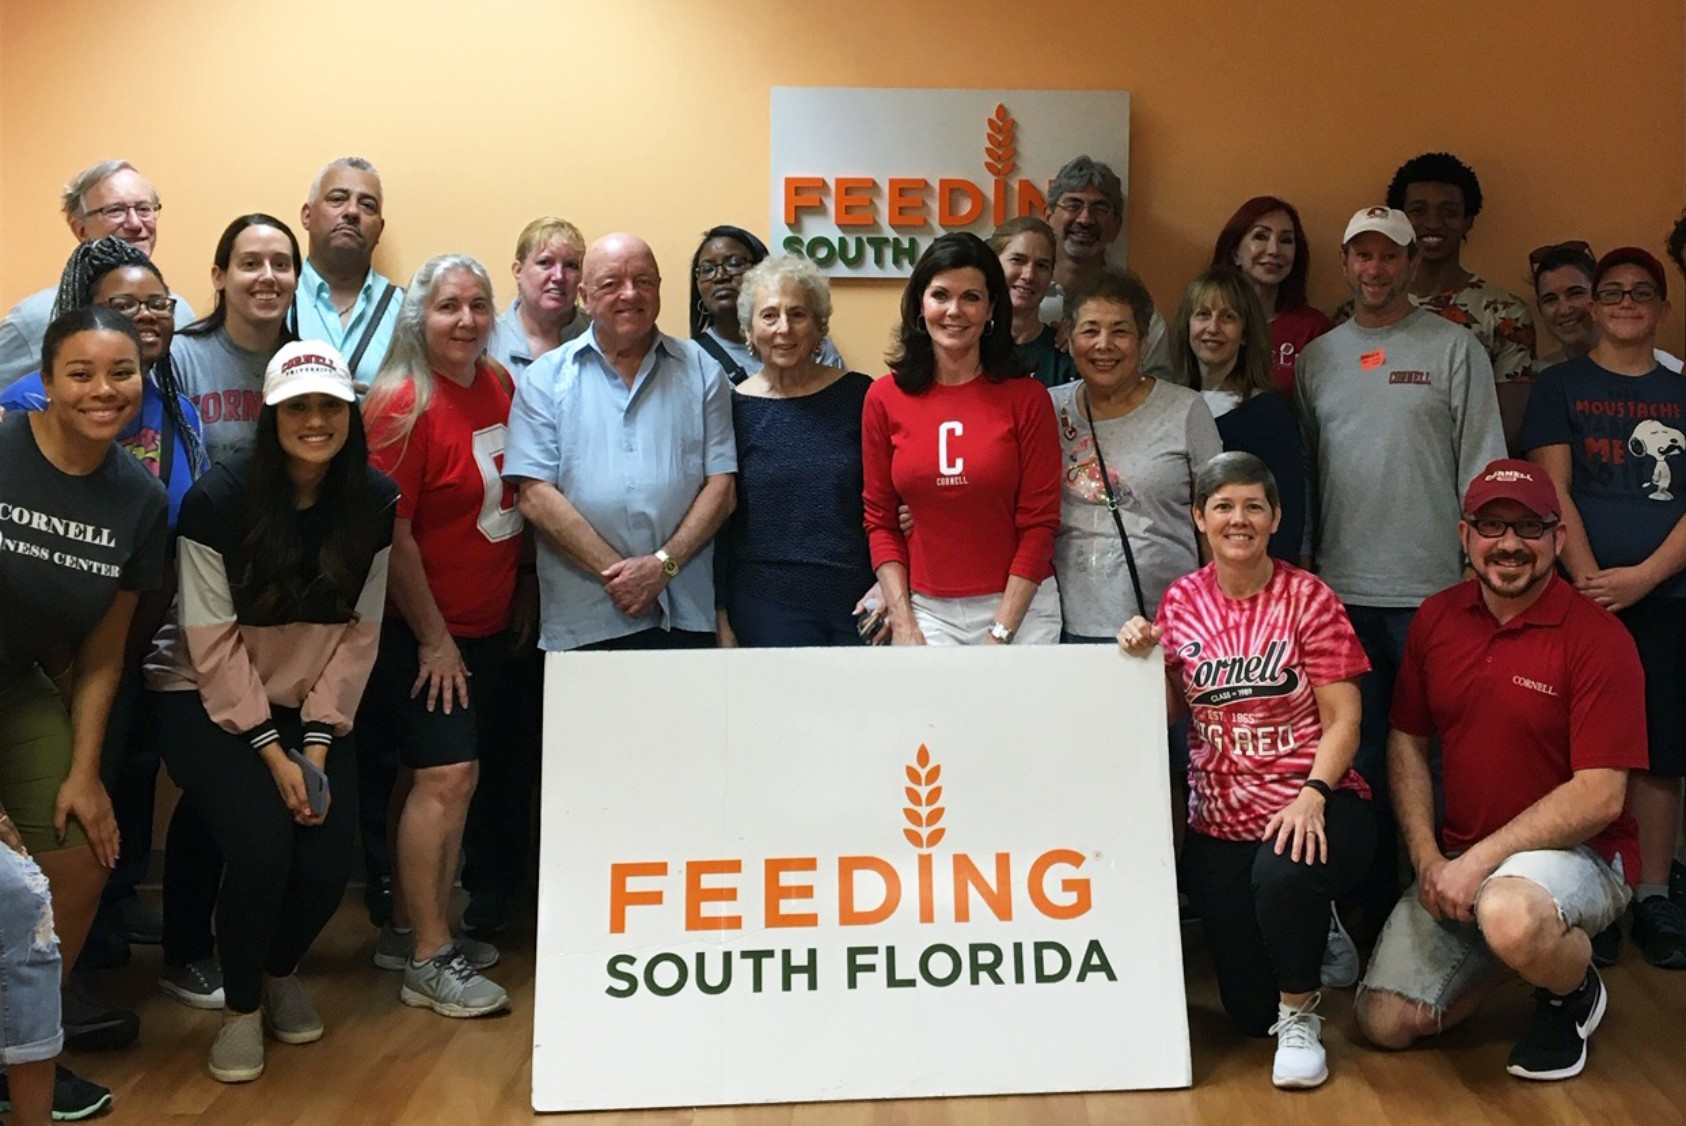 Volunteers from three South Florida Cornell clubs spent their day inspecting, sorting, and packing food for Feeding South Florida, which provides food to more than 700,000 neighbors. Matt Carcella (kneeling with a red Cornell cap) director of Diversity Alumni Programs and US Regional Alumni Engagement, joined in.